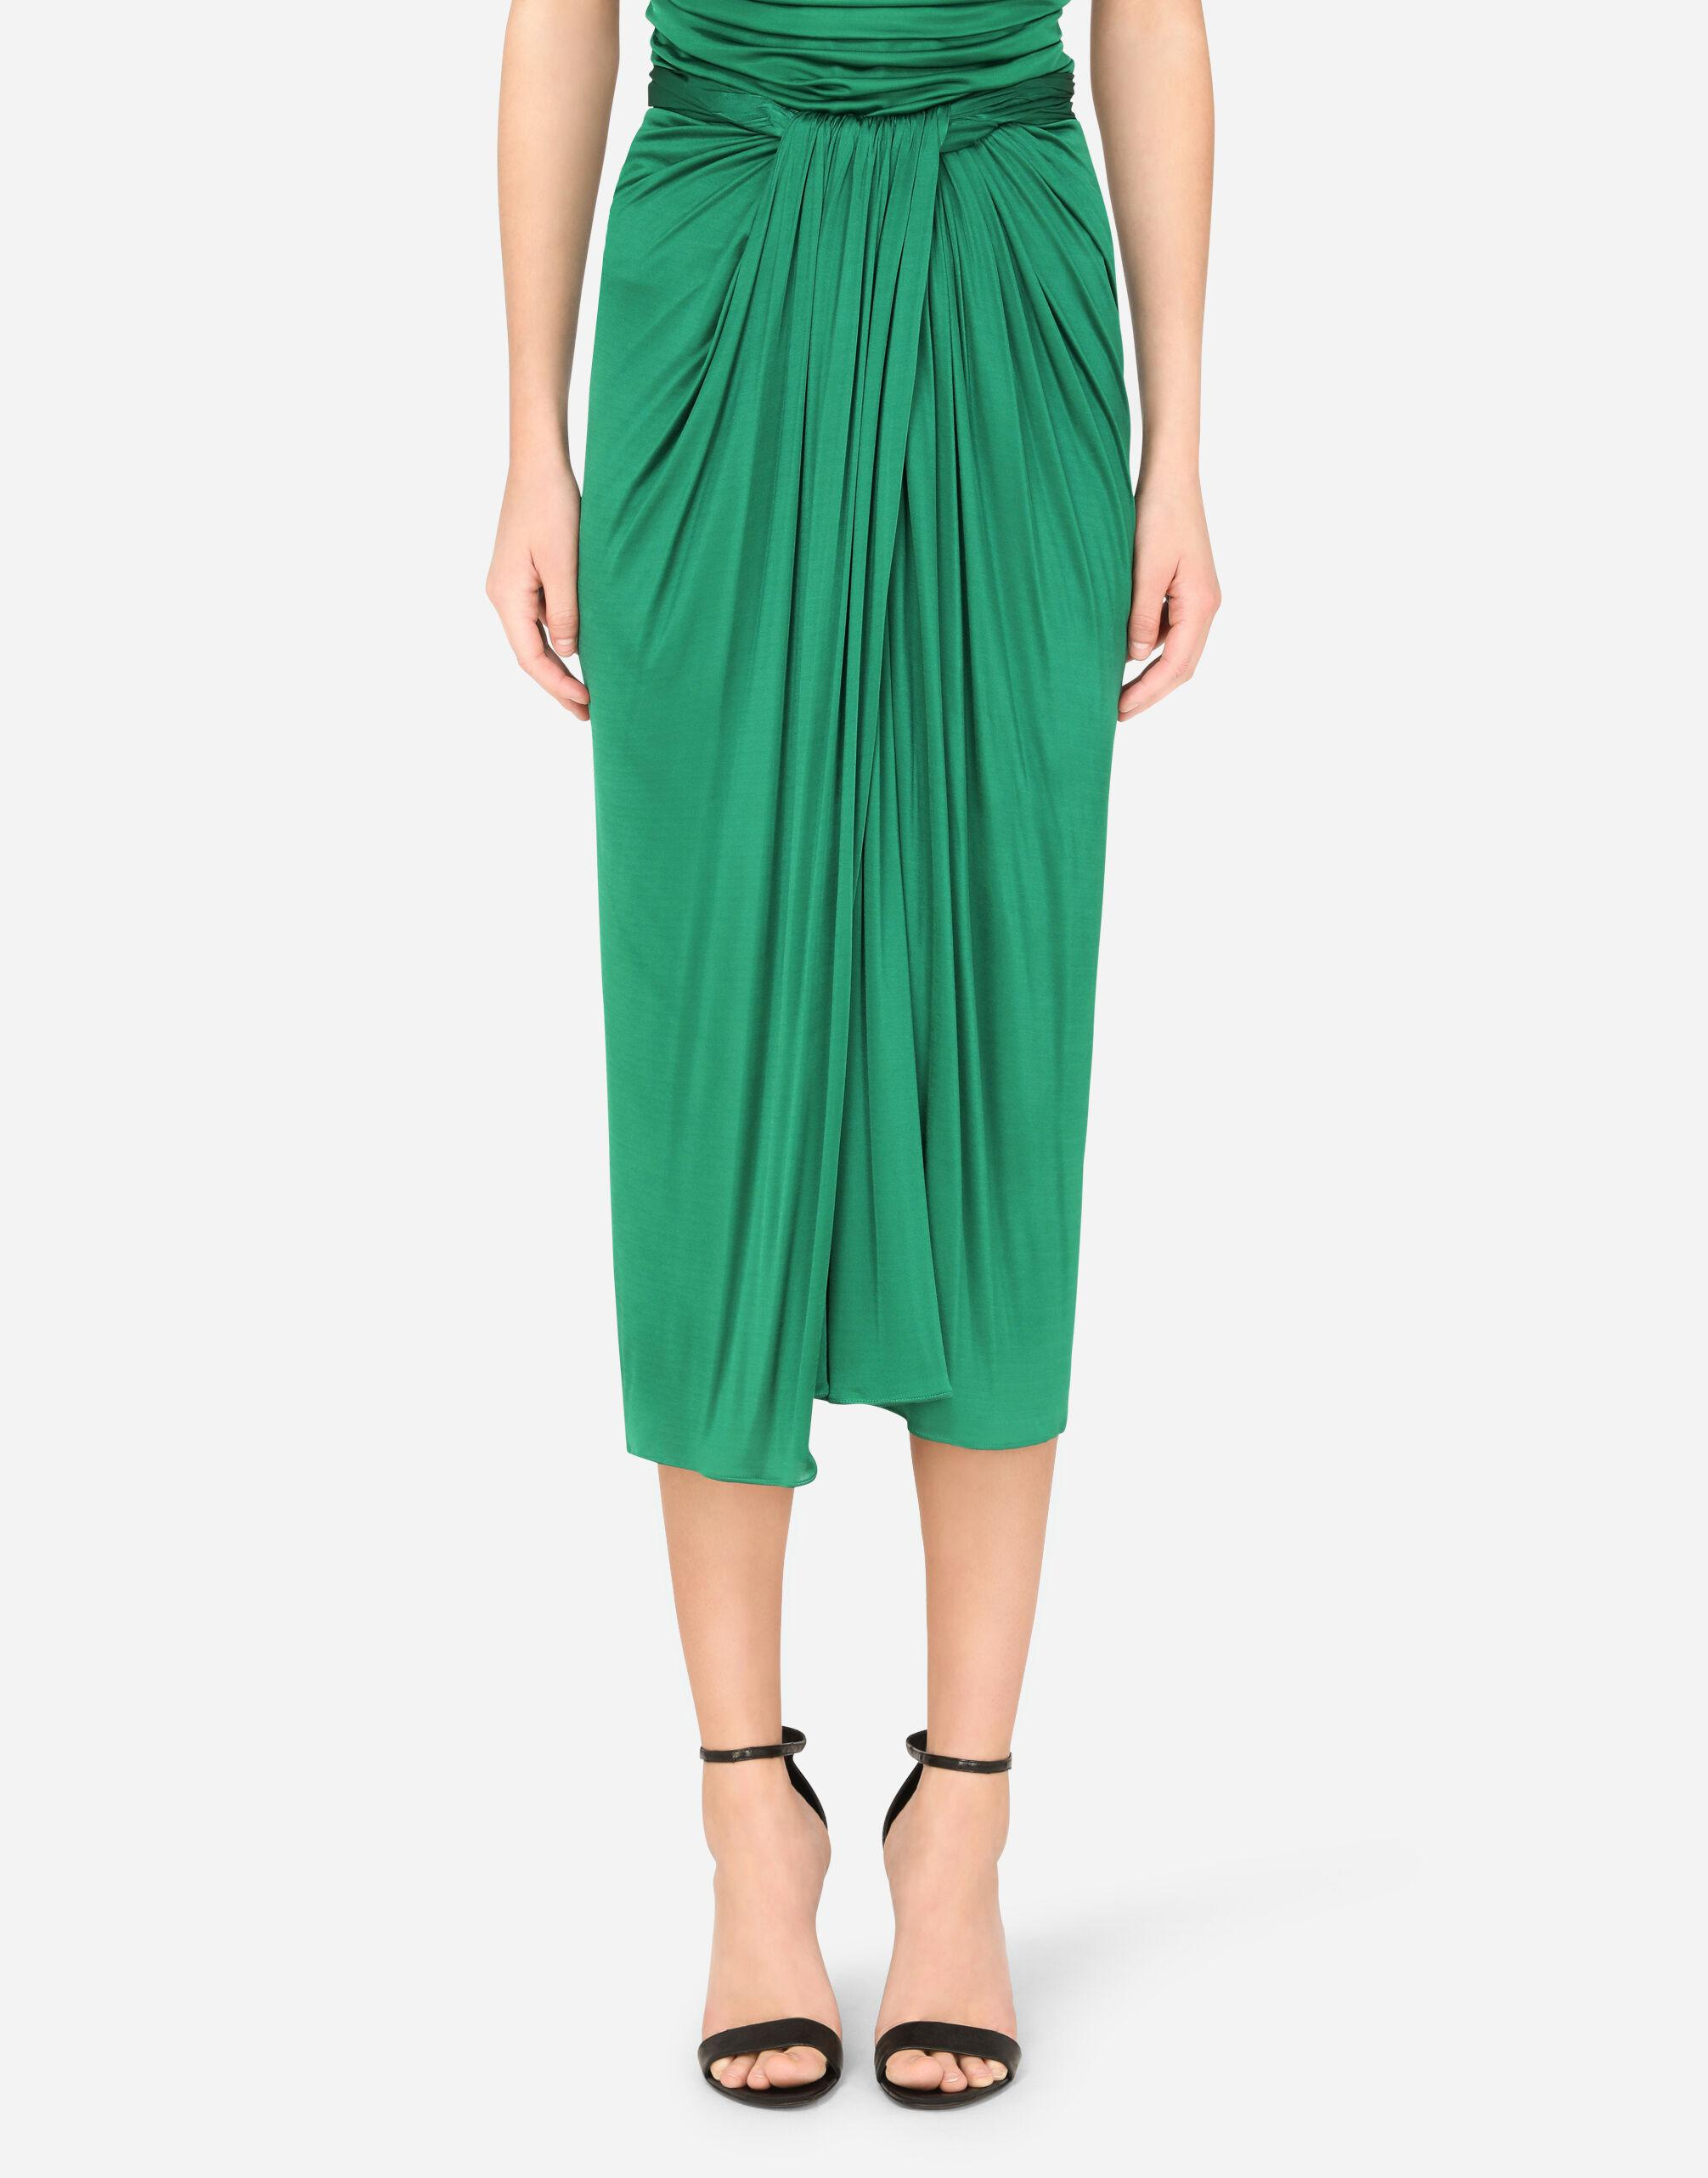 Longuette skirt in jersey with draping